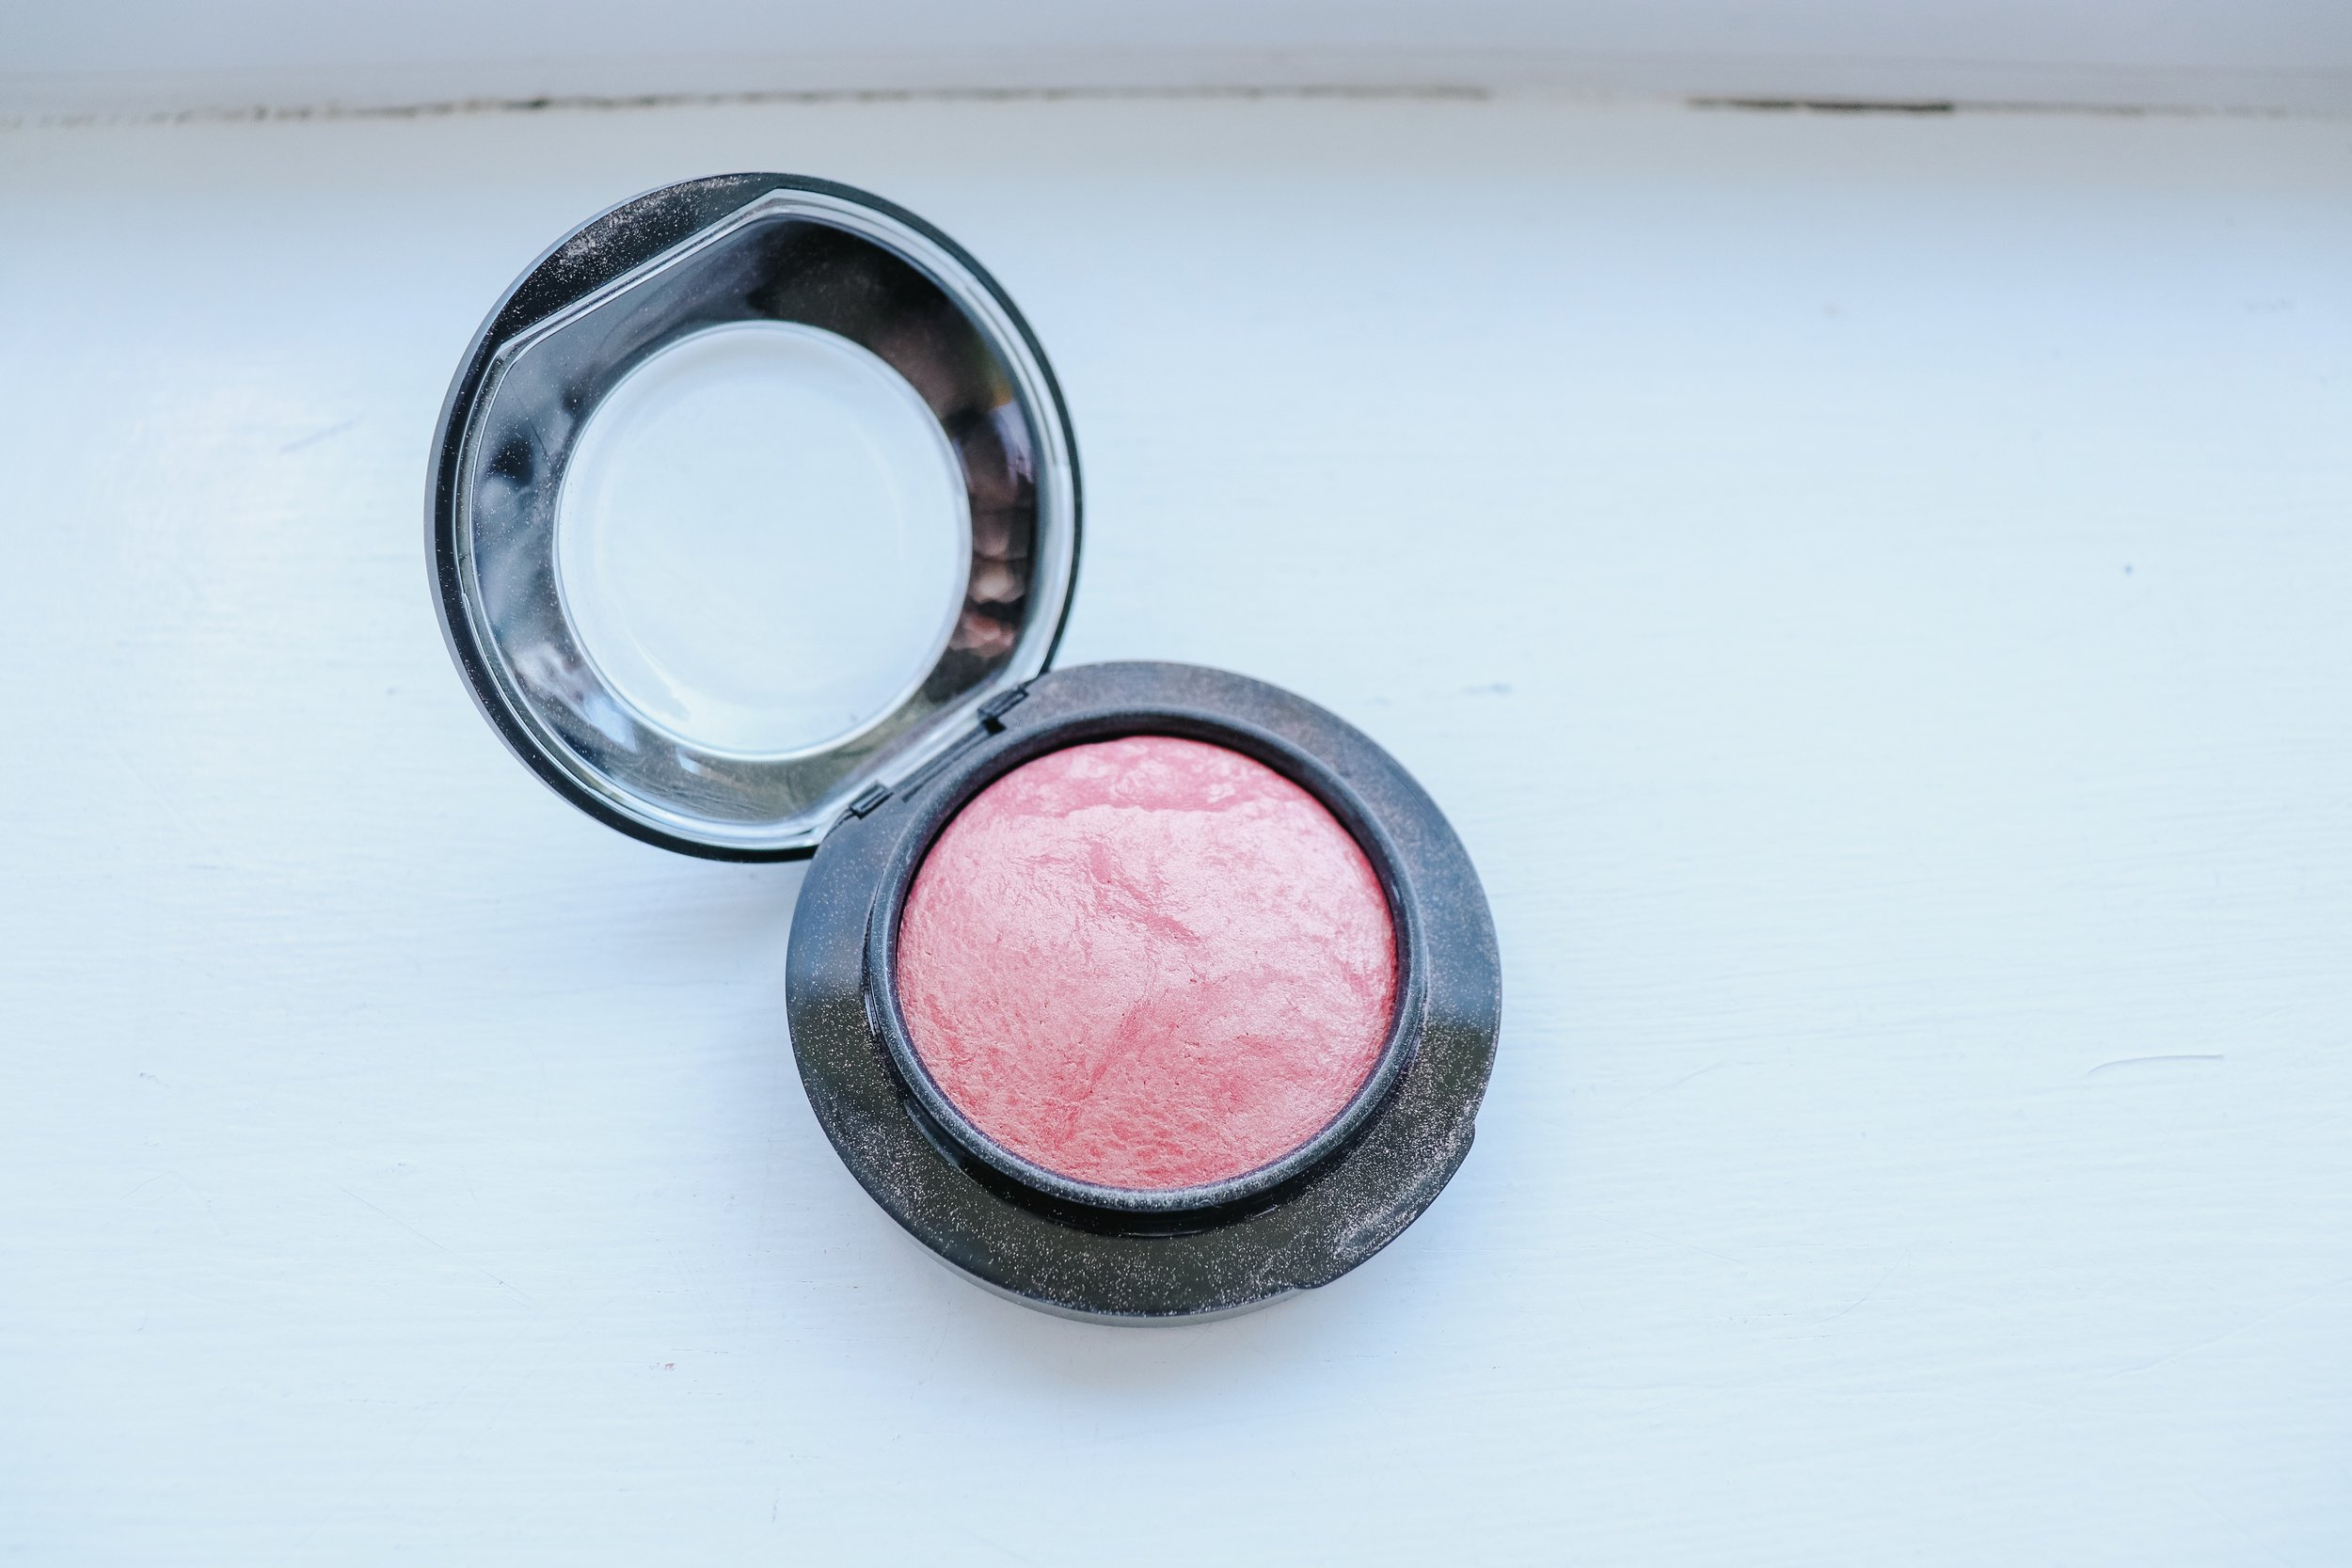 """This photo doesn't even do the color justice! I bought the color """"Petal Power"""", it's a coral pink with gold shimmer in it and it's the BOMB. I love MAC's mineralized blush..they are so natural and look so beautiful on the skin. This color gives you just enough pink and the gold undertones give you a beautiful glow!"""